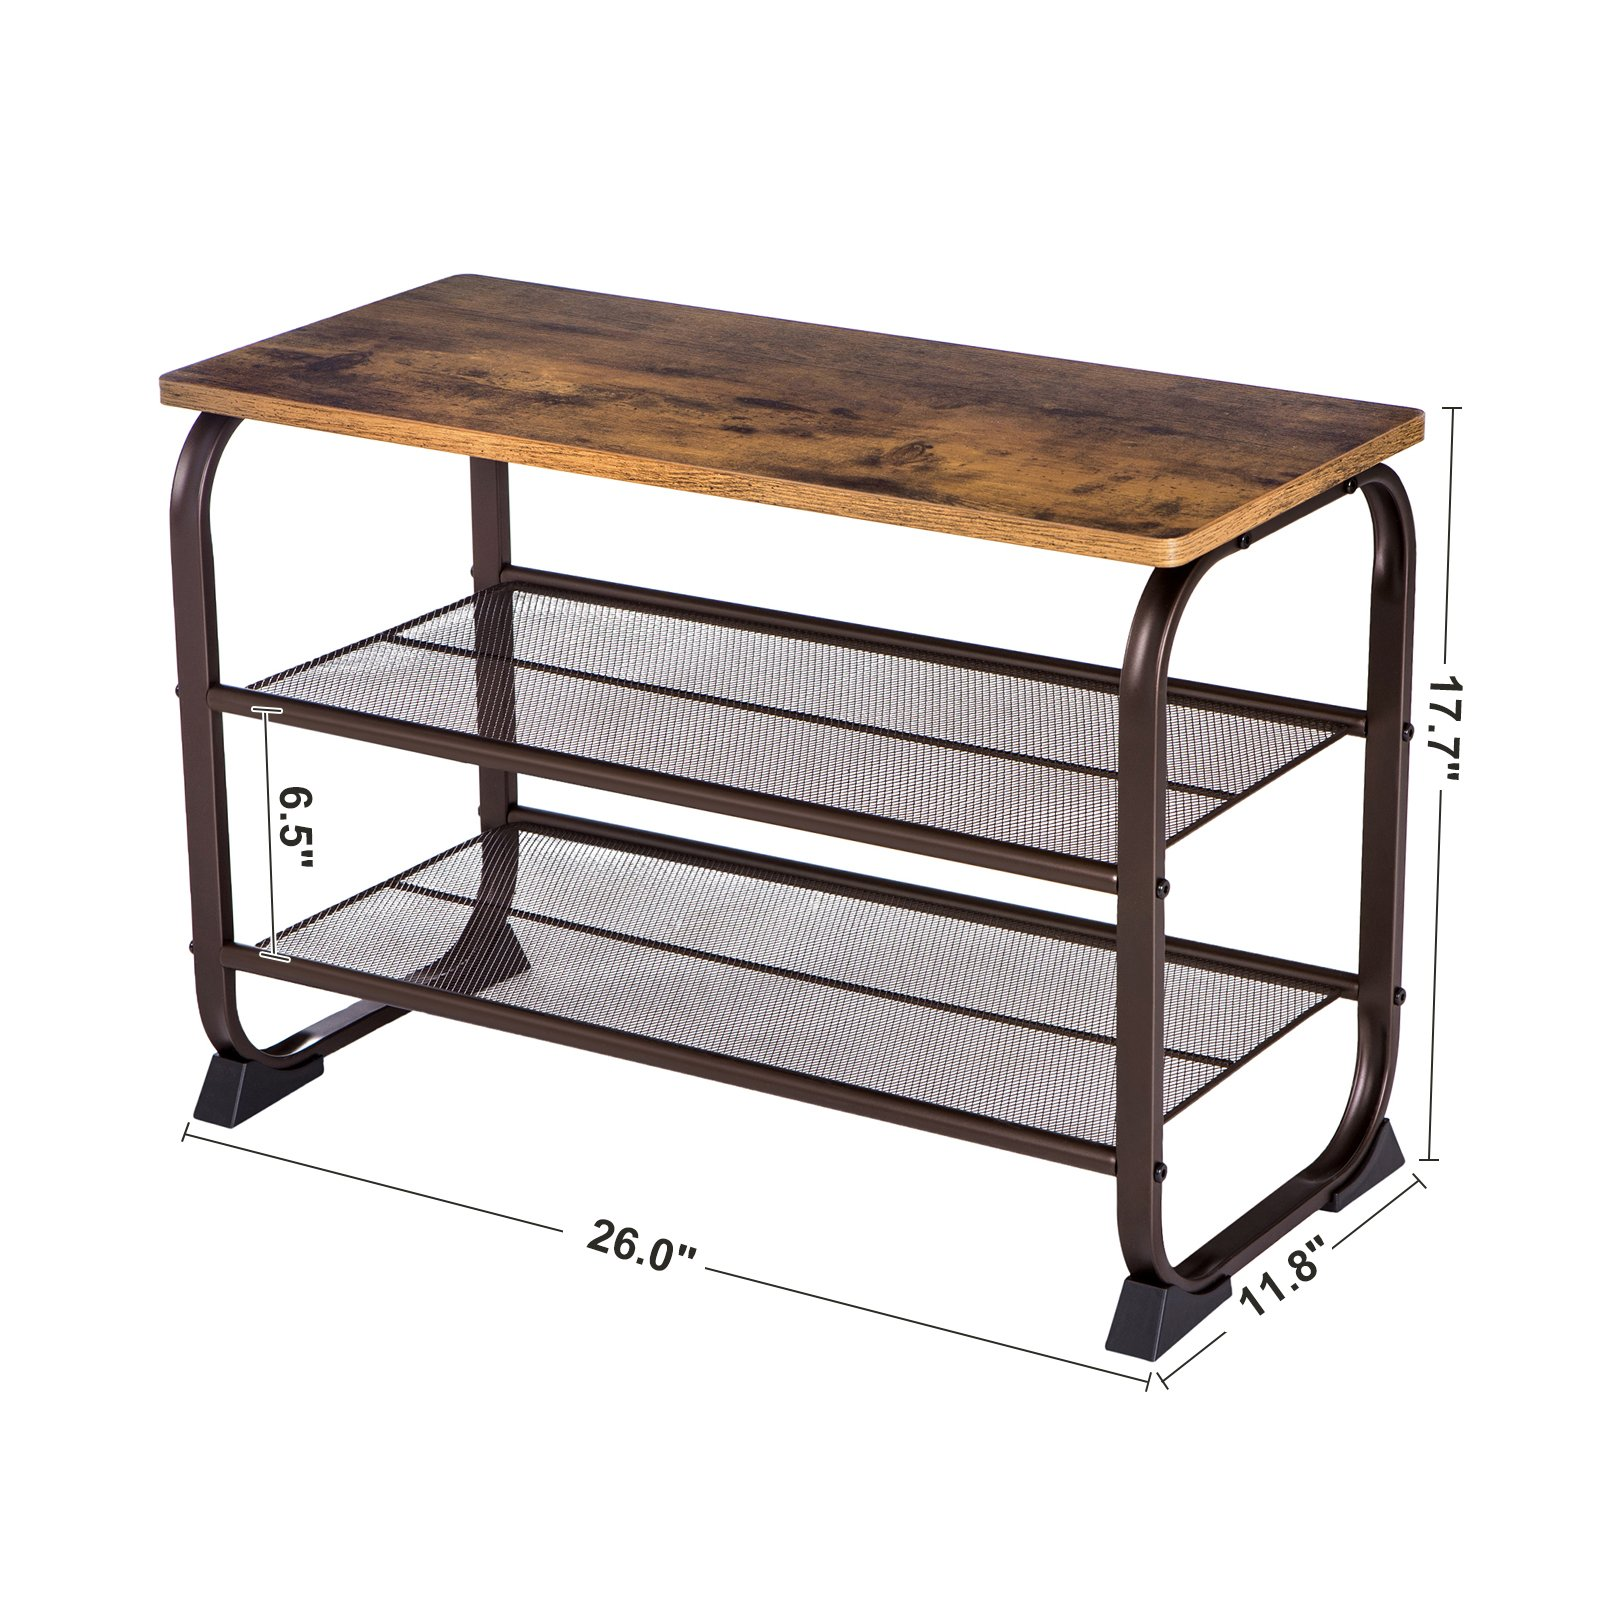 SONGMICS Vintage Shoe Bench Rack, 3 Tier Shoe Storage Shelf For Entryway  Hallway Living Room, Wood Look Accent Furniture With Metal Frame, Easy  Assembly ...